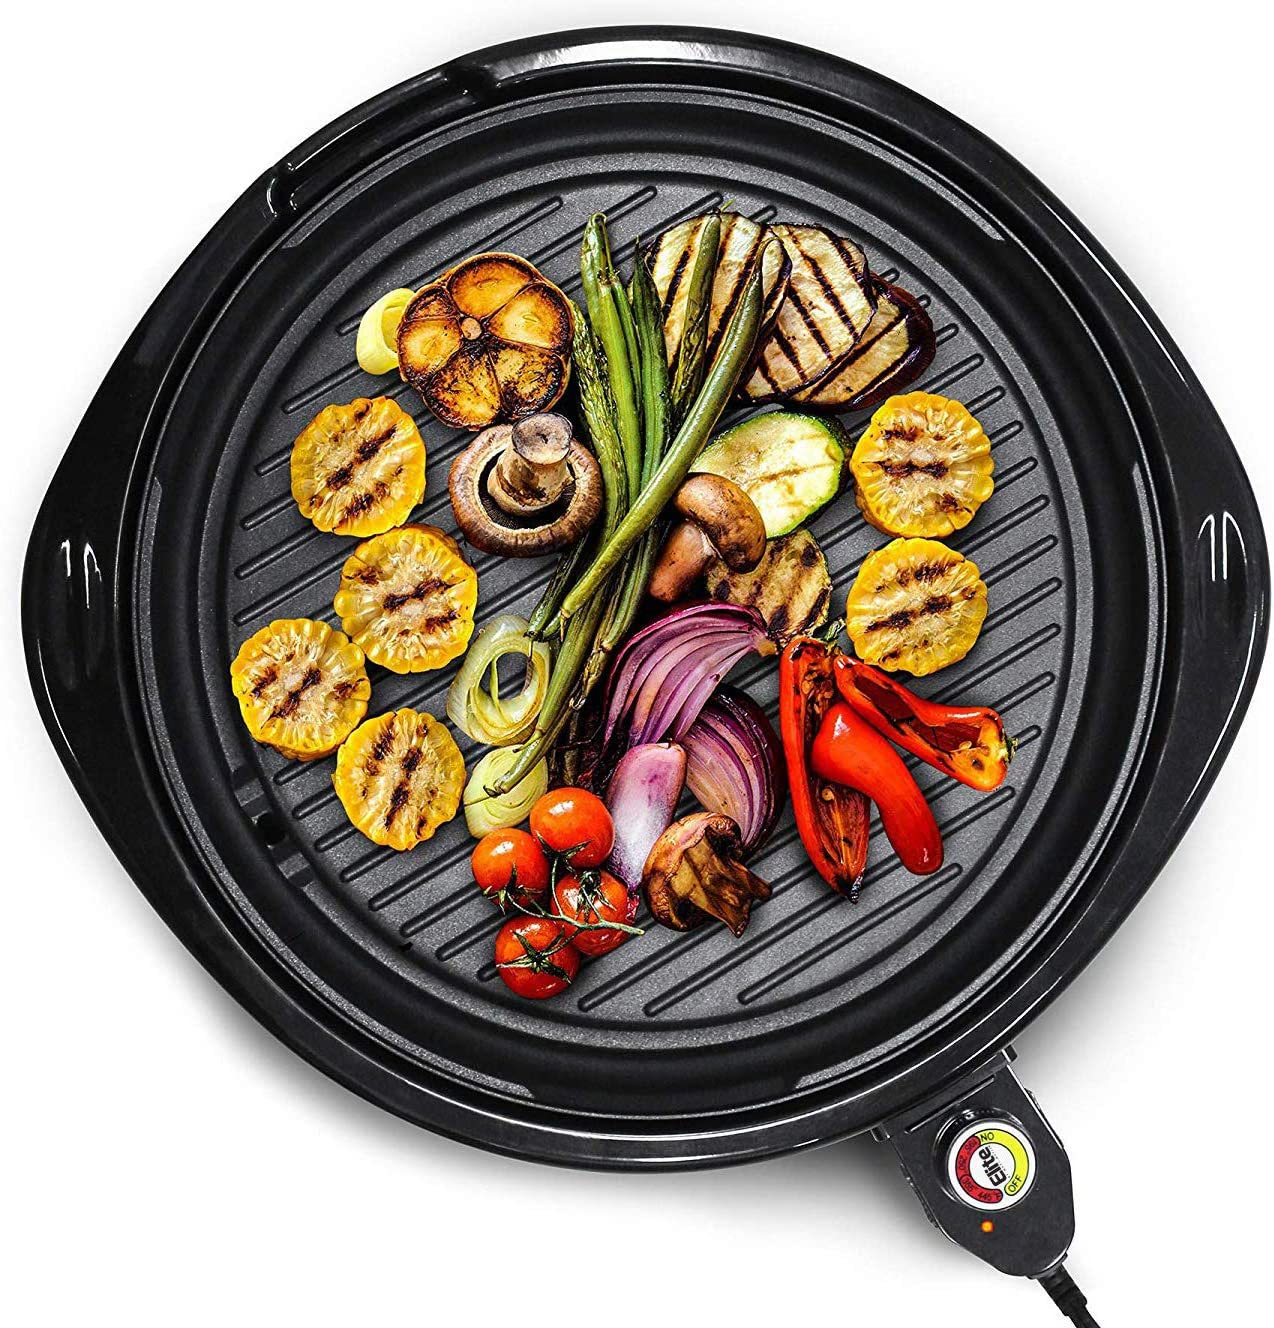 Maxi-Matic Elite Gourmet Large Indoor Grill. Best New Small Kitchen Appliances — Reviewing Indoor Grills